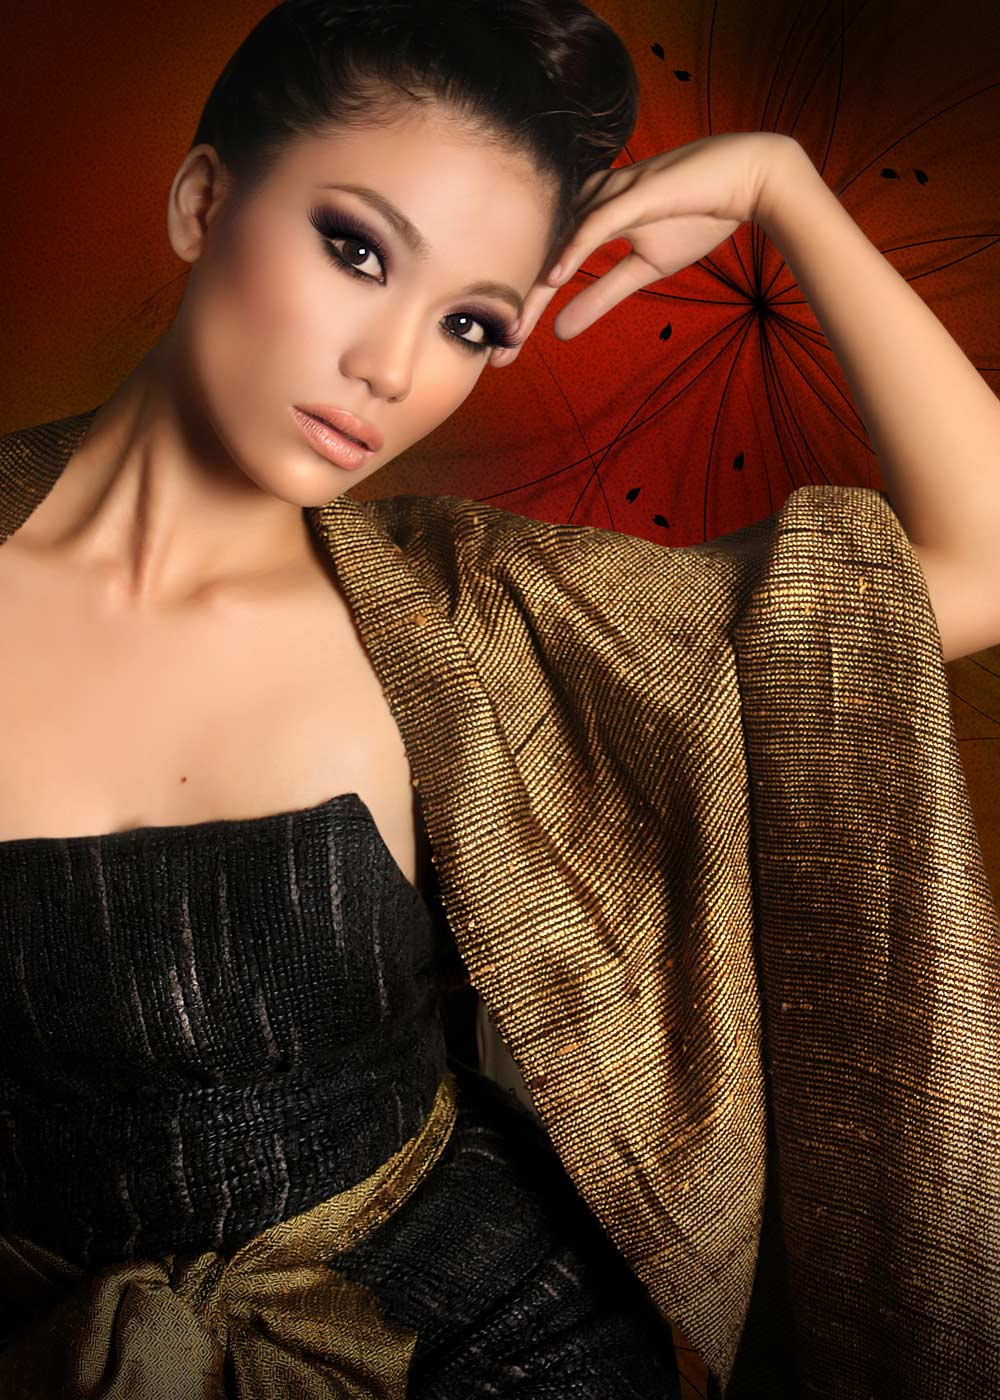 Highend model photo retouching with background changing highlighting skin of model